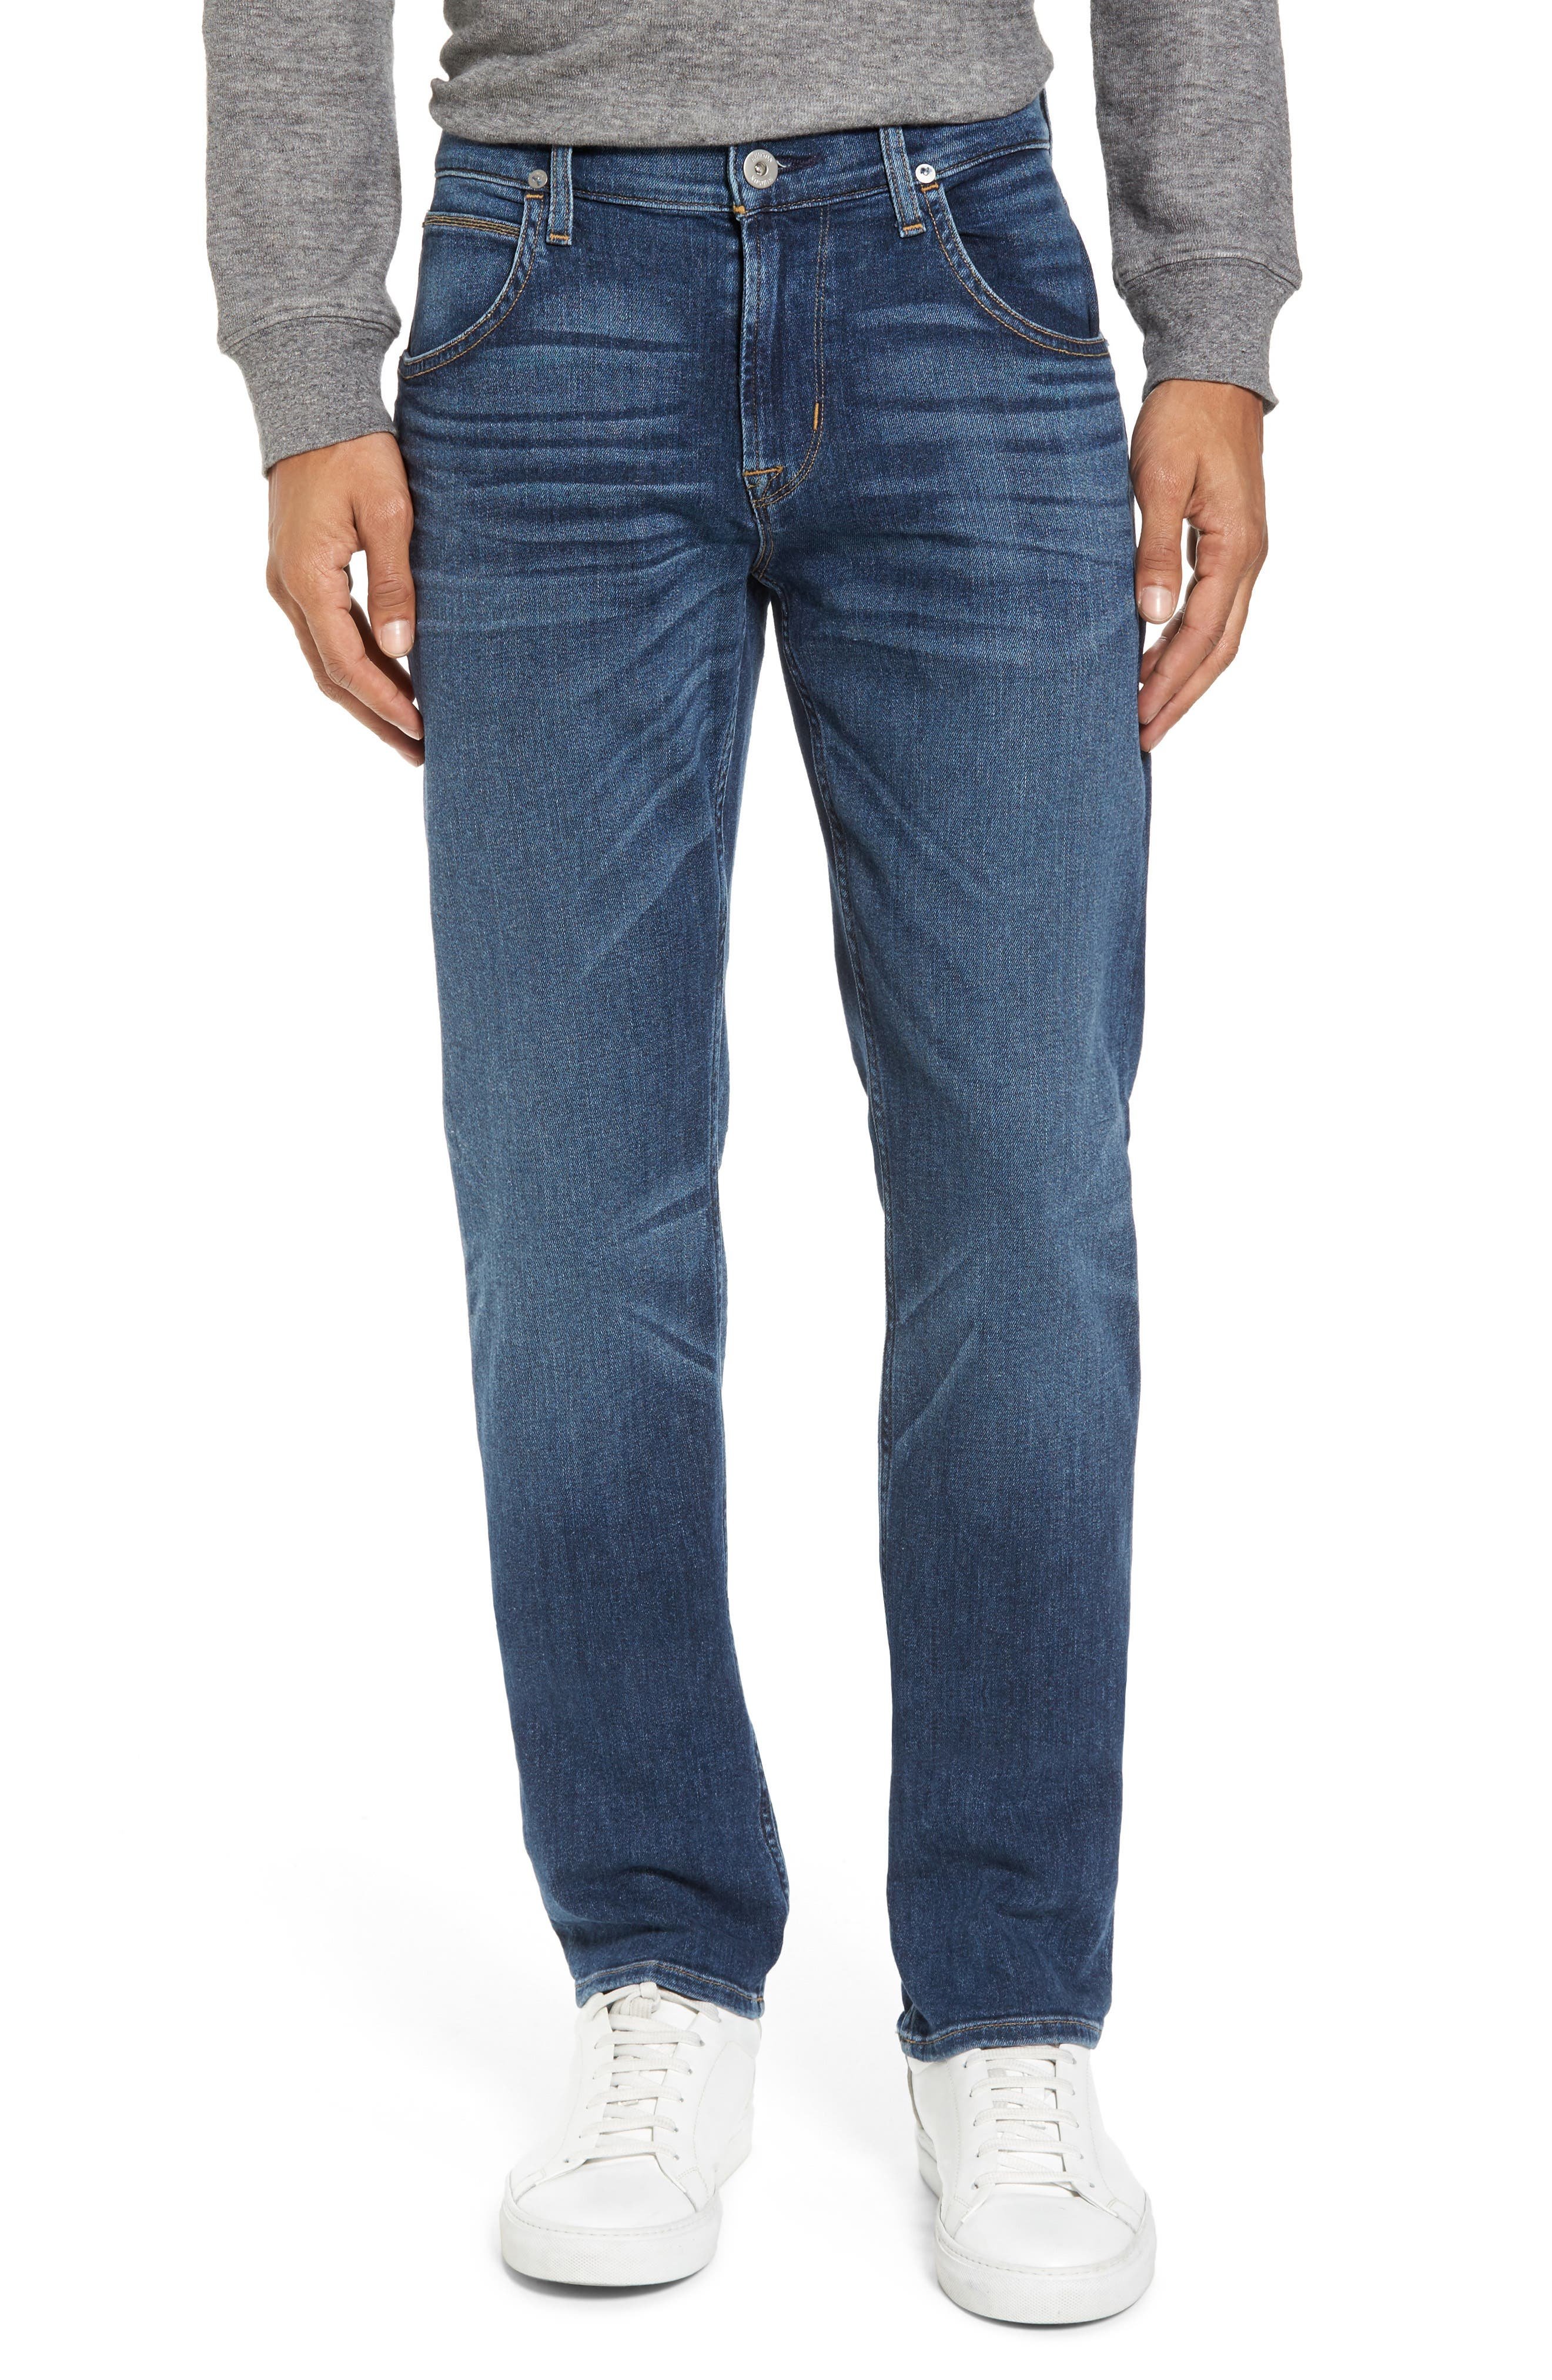 Blake Slim Fit Jeans,                         Main,                         color, 420